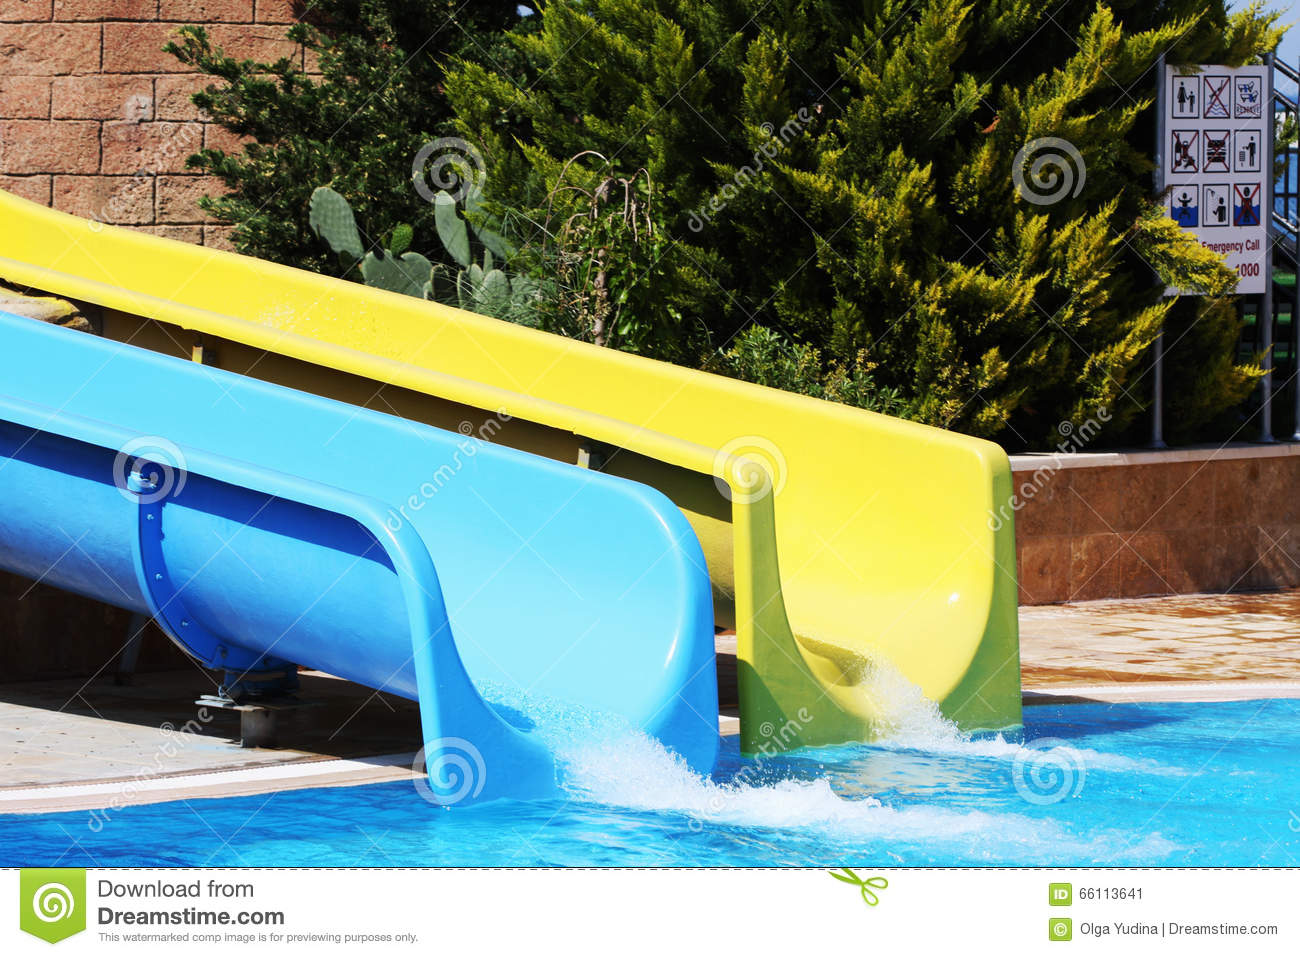 Swimming Pool With Waterslides Stock Image - Image of marine ...